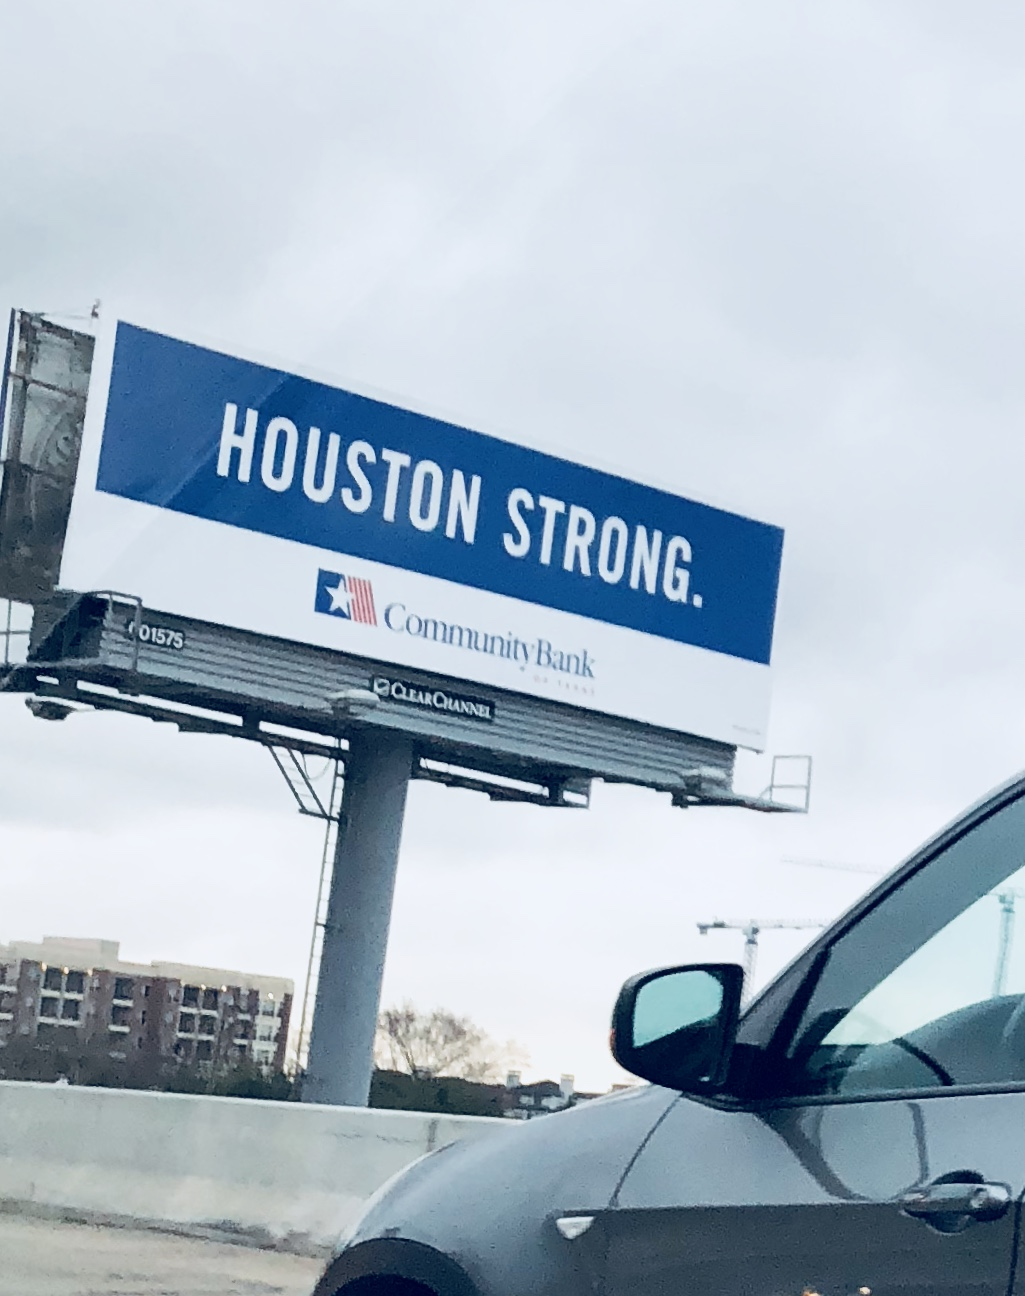 Houston Strong! - Taken by Tiffany Largey